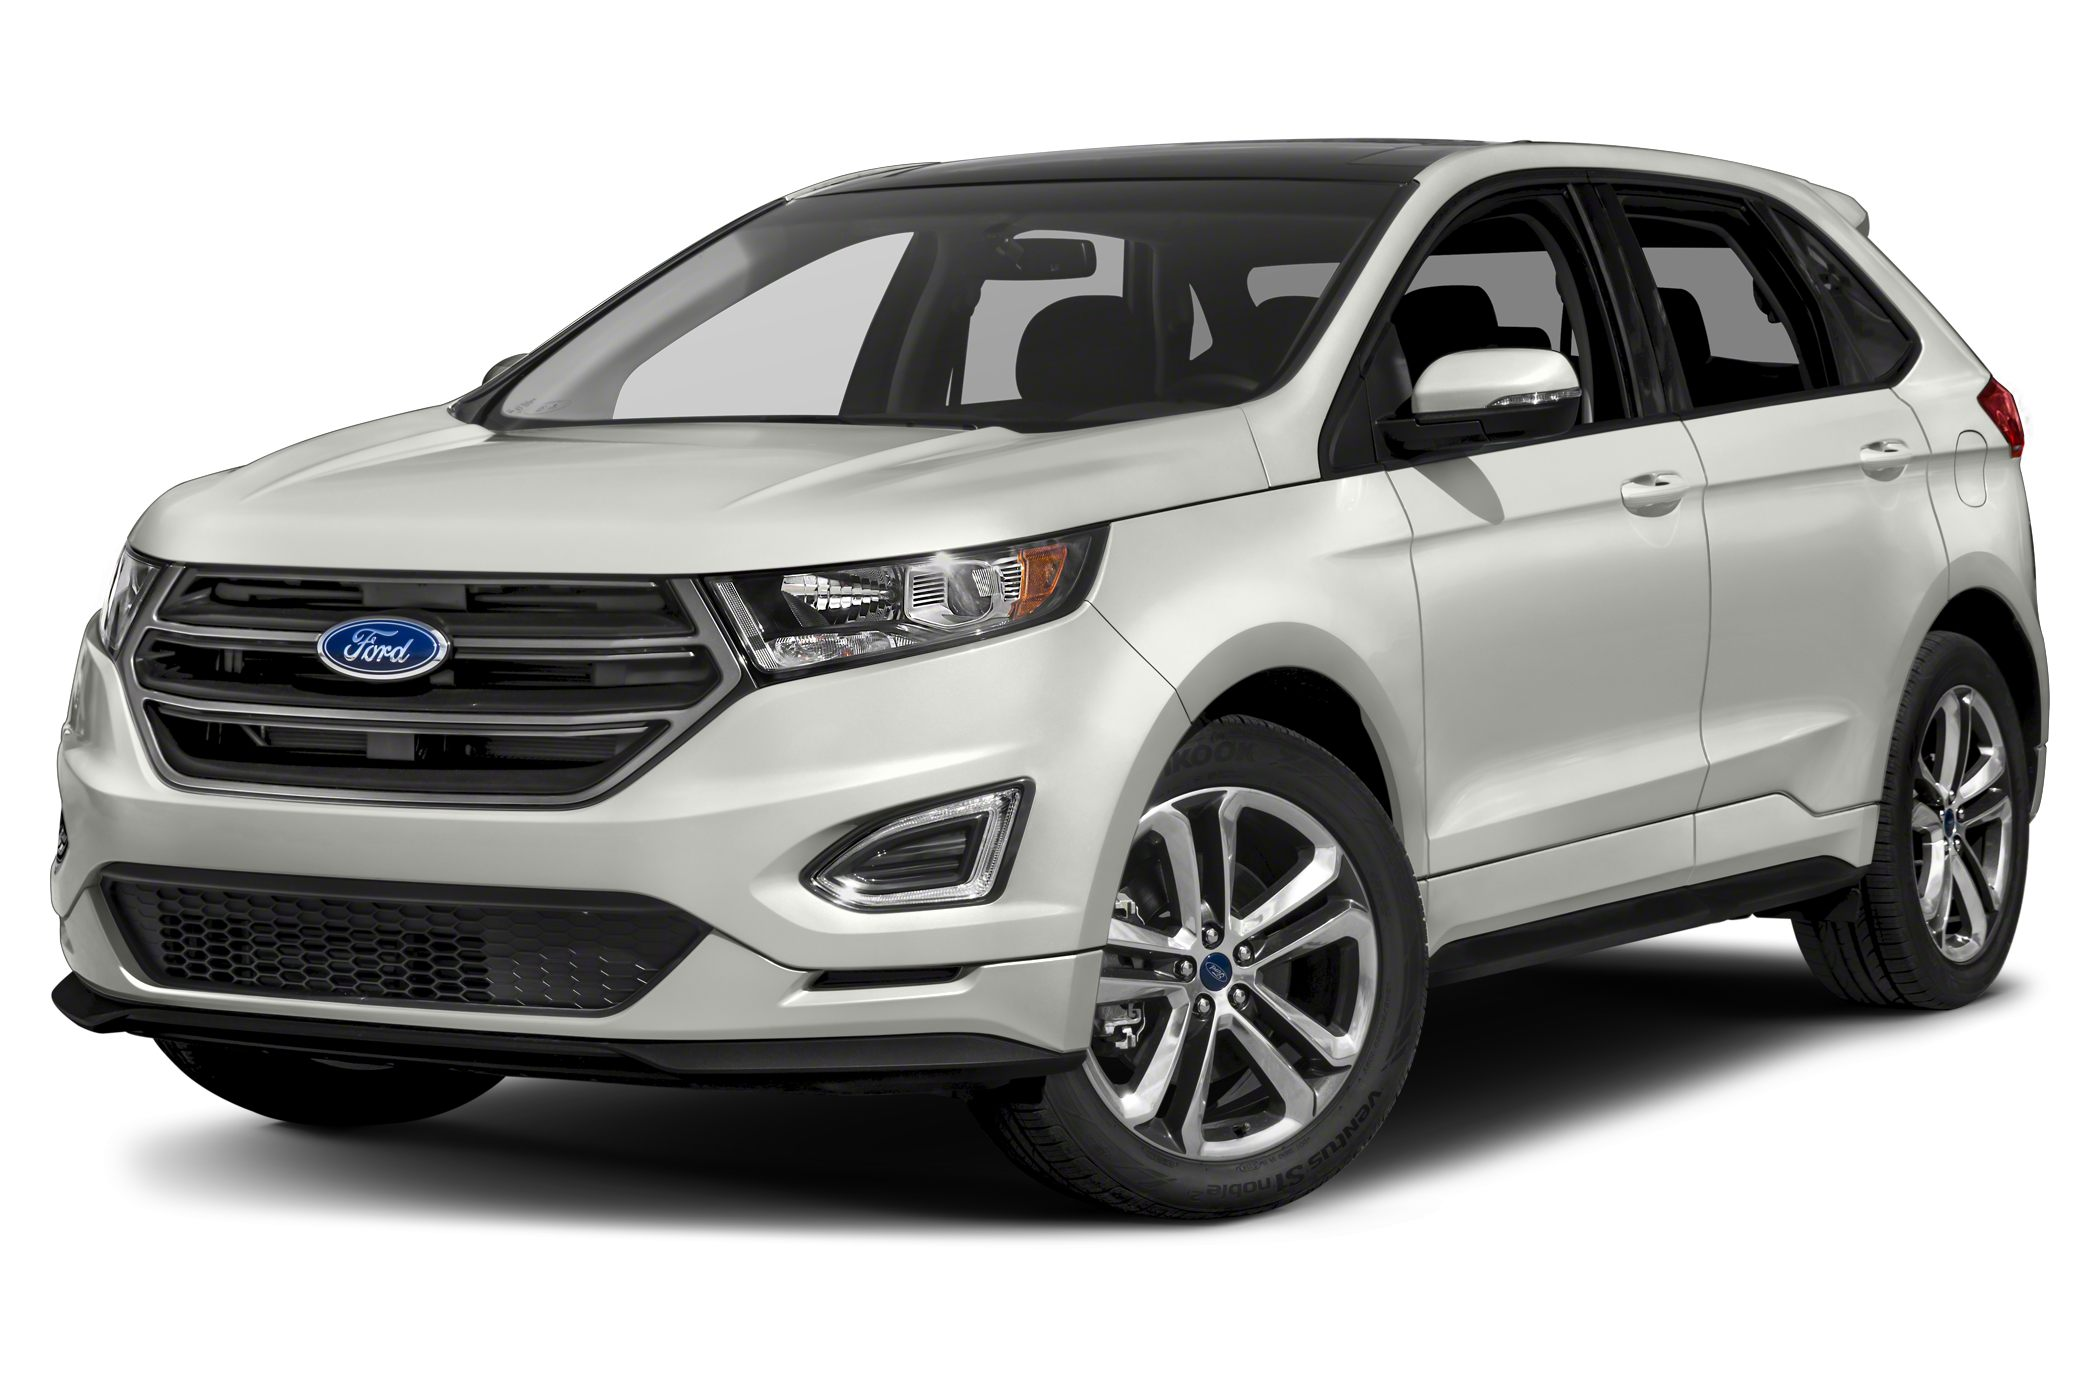 Used  Ford Edge D Suv Awd Sport At Mike Burkart Ford Near Plymouth Wi